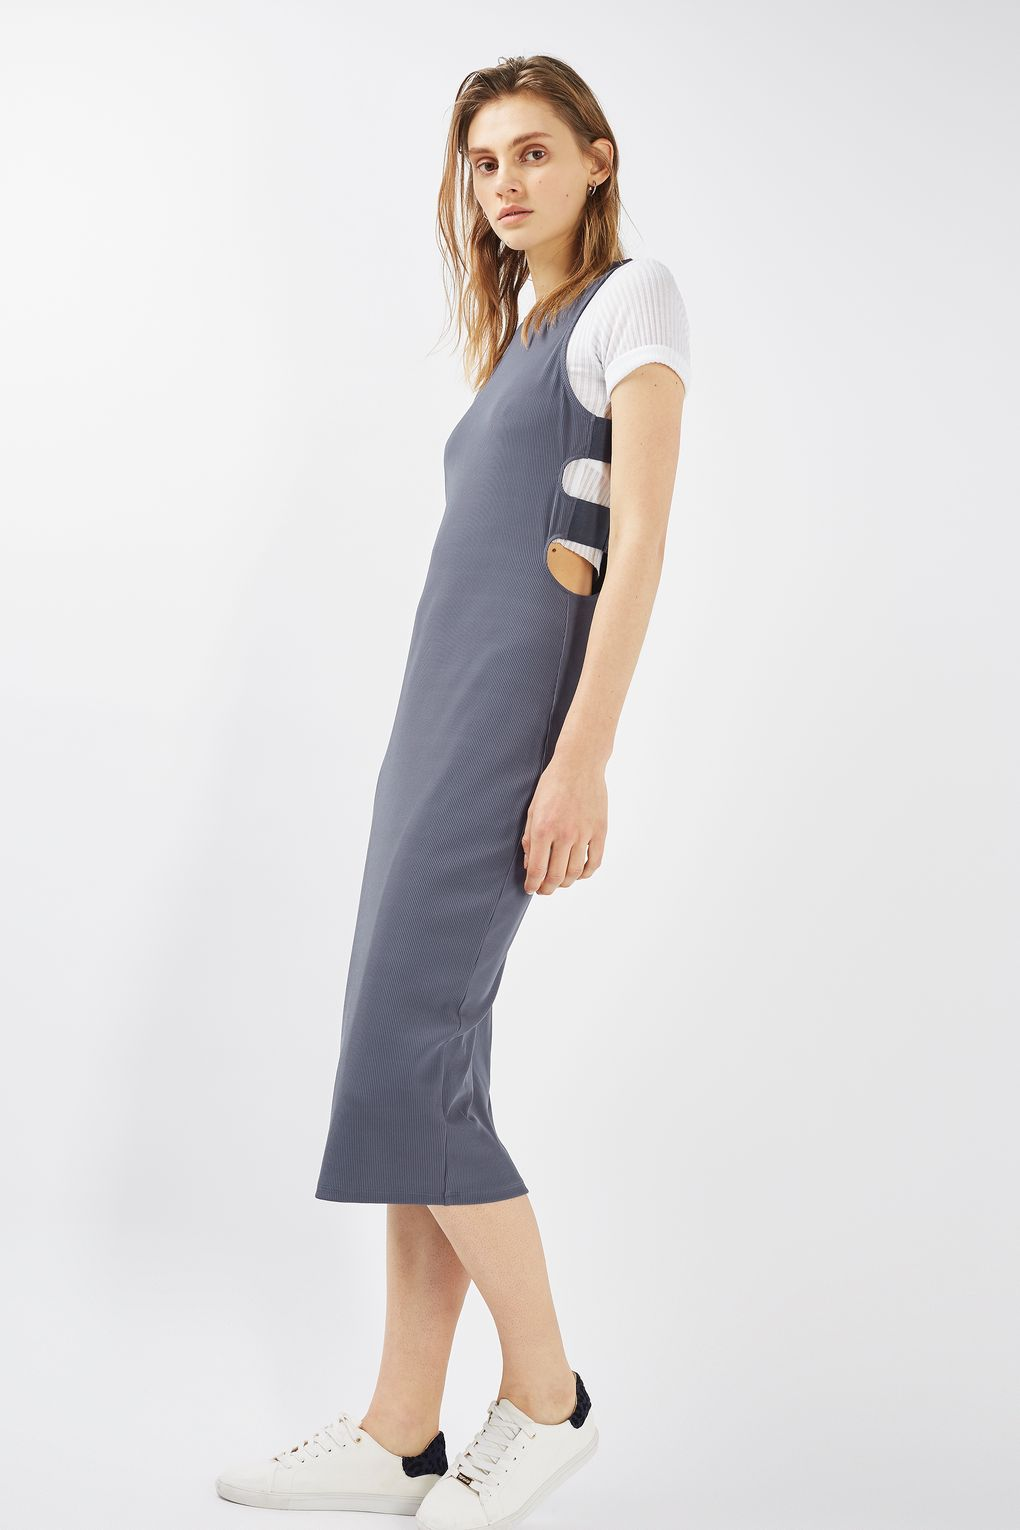 77a566d9 Topshop Cut-Out Side Midi Dress, $24